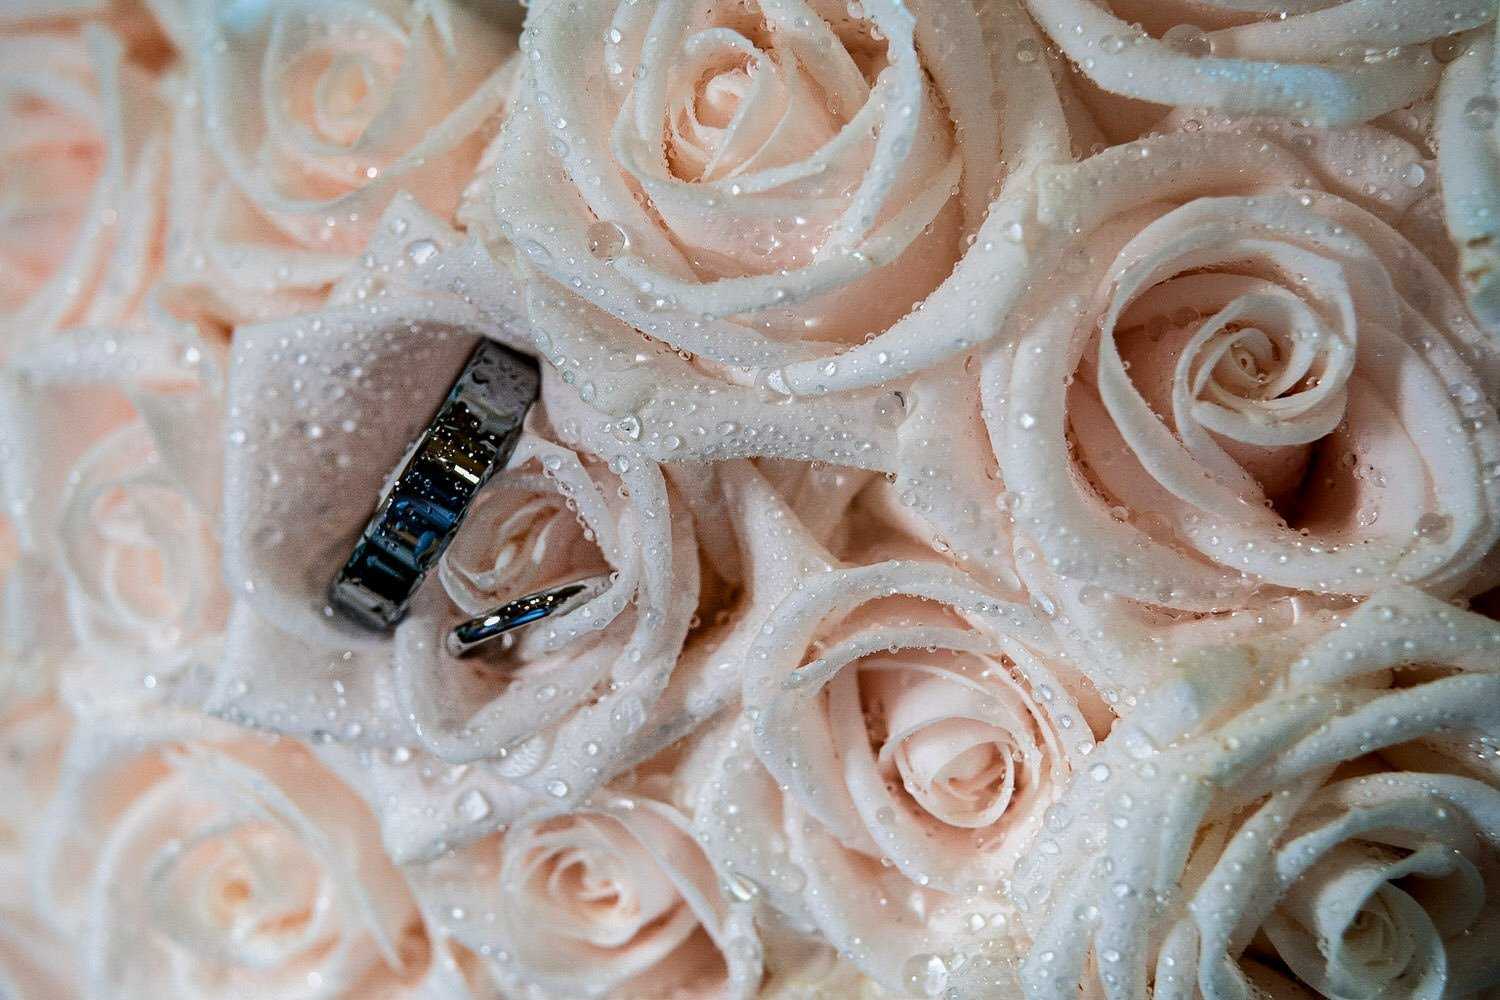 Foxton Lock Lodges Lockwood Weddings Photography wedding rings nesstled within the bridal bouquet pink natural roses with water beads